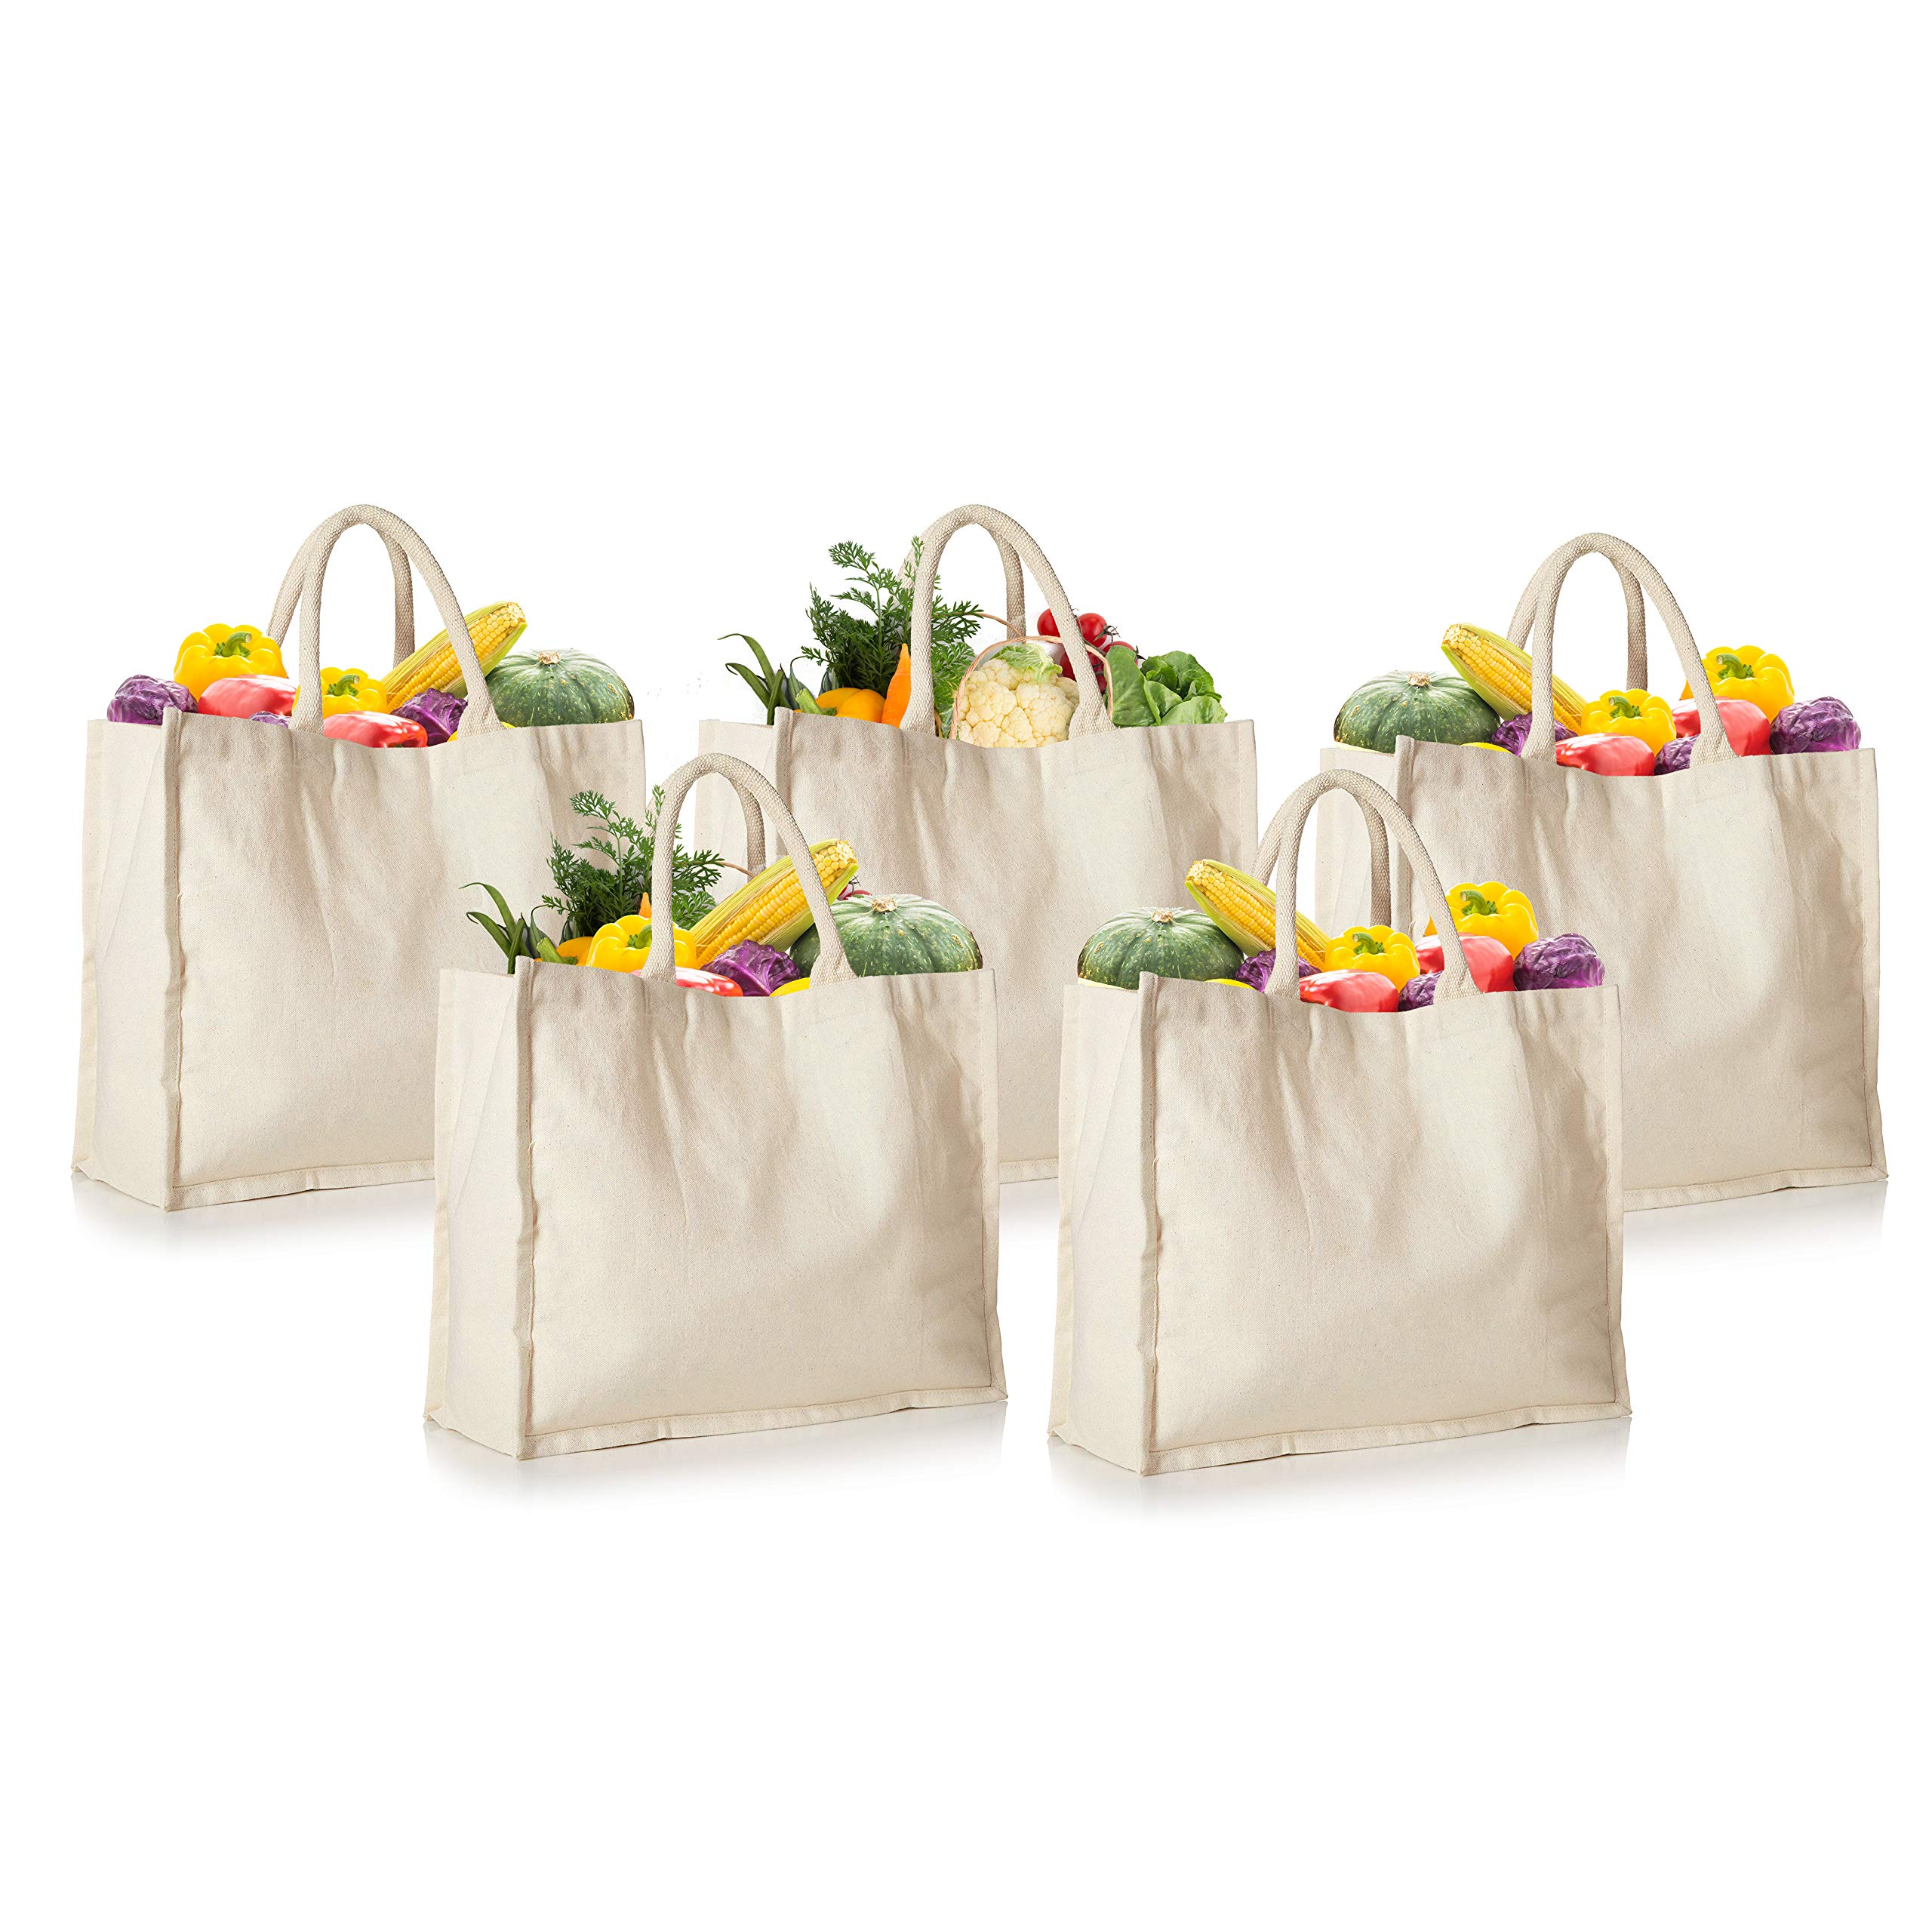 5 Pack Canvas Grocery Bags, 100% Canvas Shopping Bags Reusable Washable with Cotton Web Handle, 16.5 Inches Wide, 13 inches tall, 7 inches wide Gusset, Ivory Colour